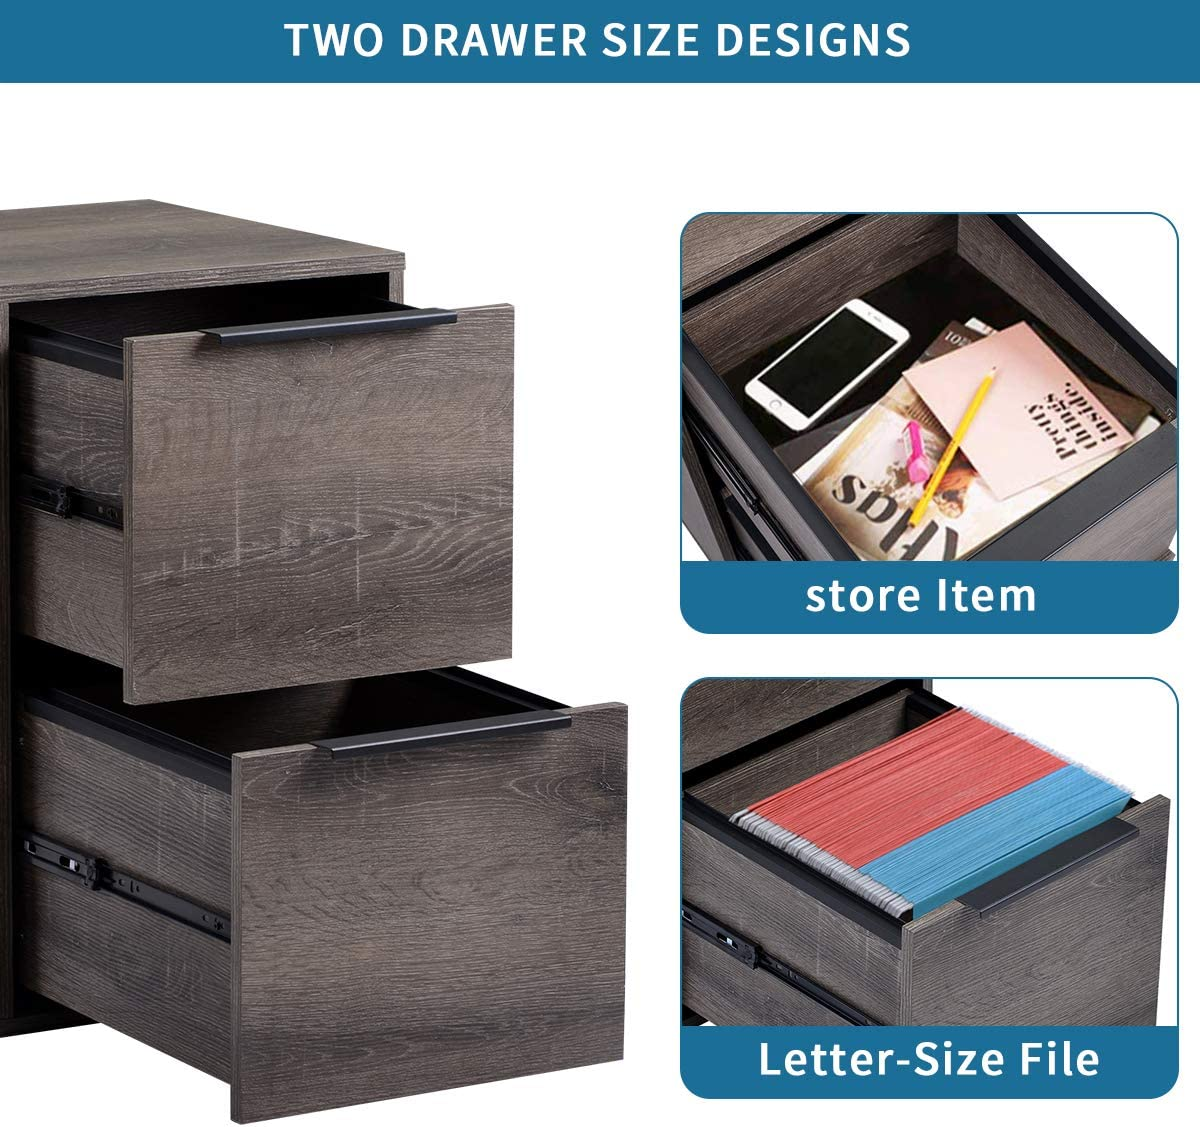 Letter-Size File for Home Vertical Filing Cabinet with 2 Drawers DANGRUUT Best Wood 2-Drawers File Cabine Walnut Office Easy to Install